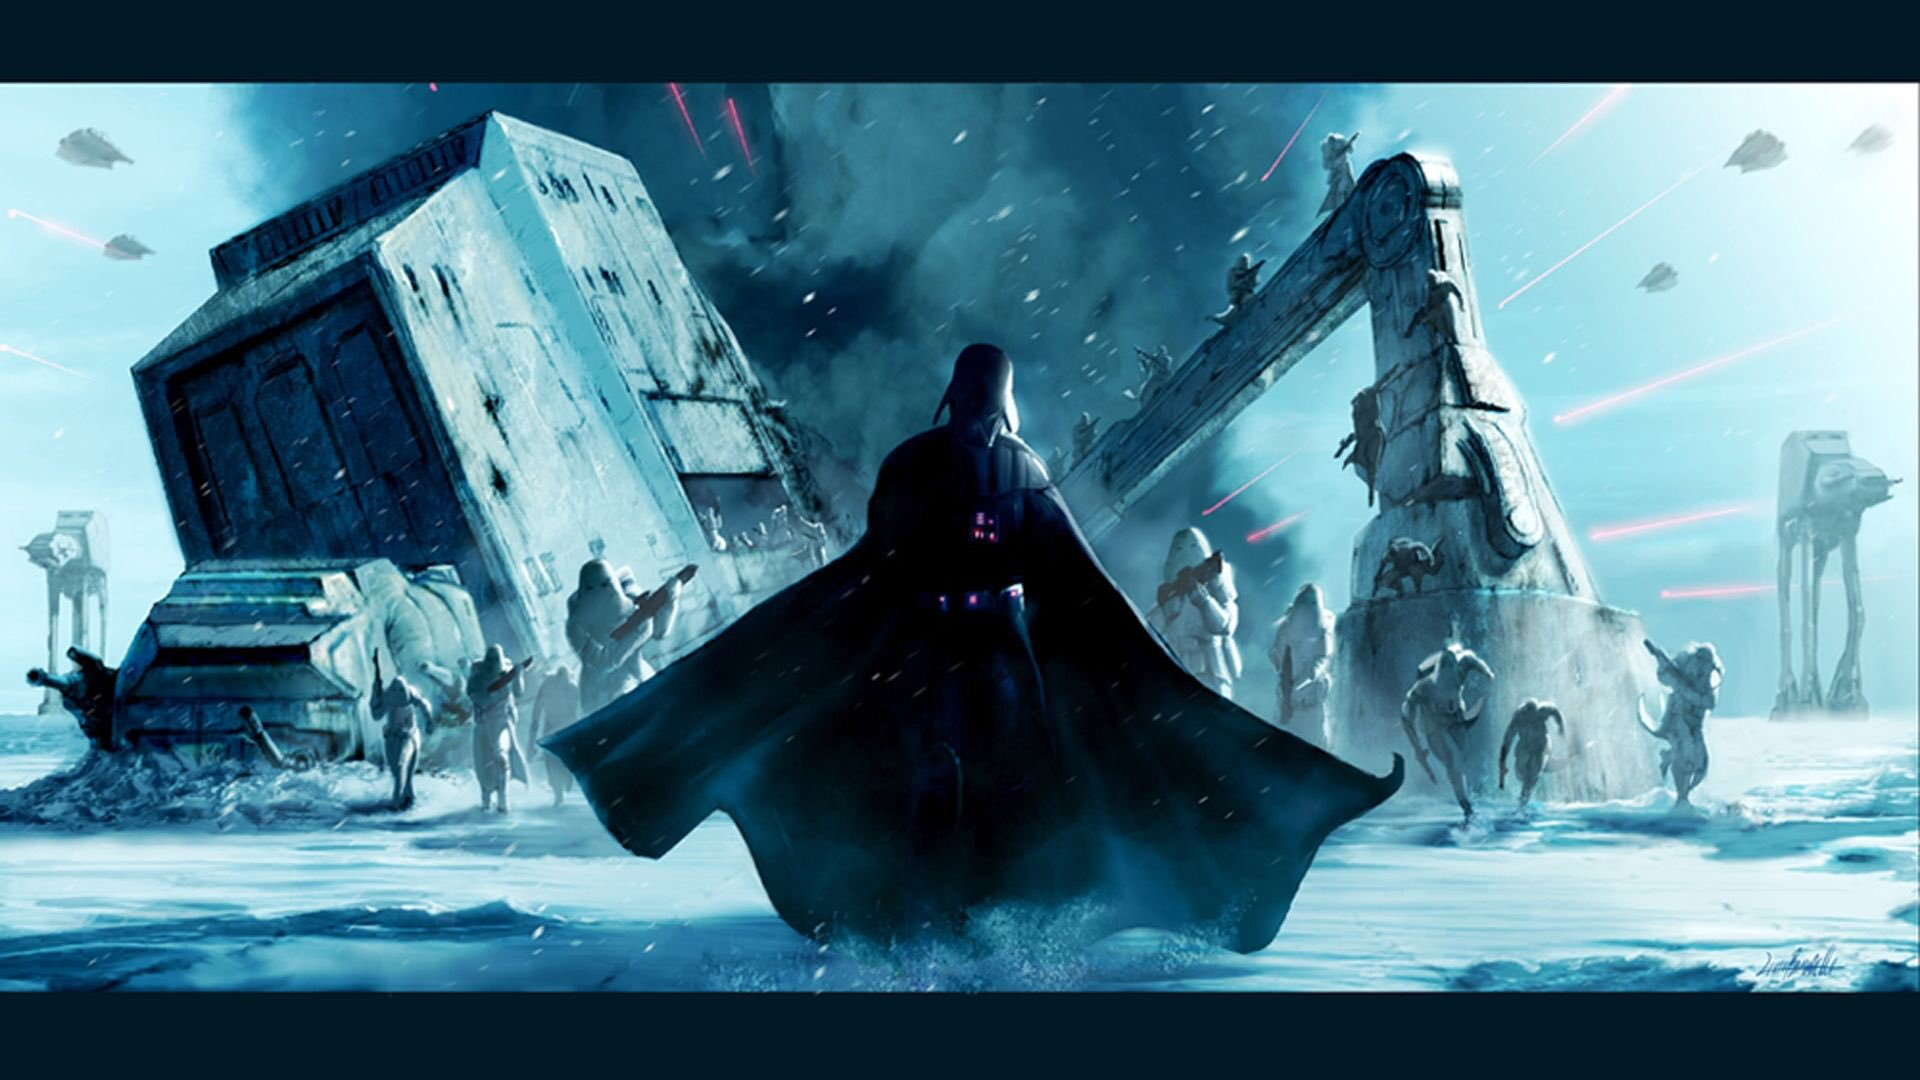 Star Wars Holocron On Twitter Some Awesome Star Wars Wallpapers